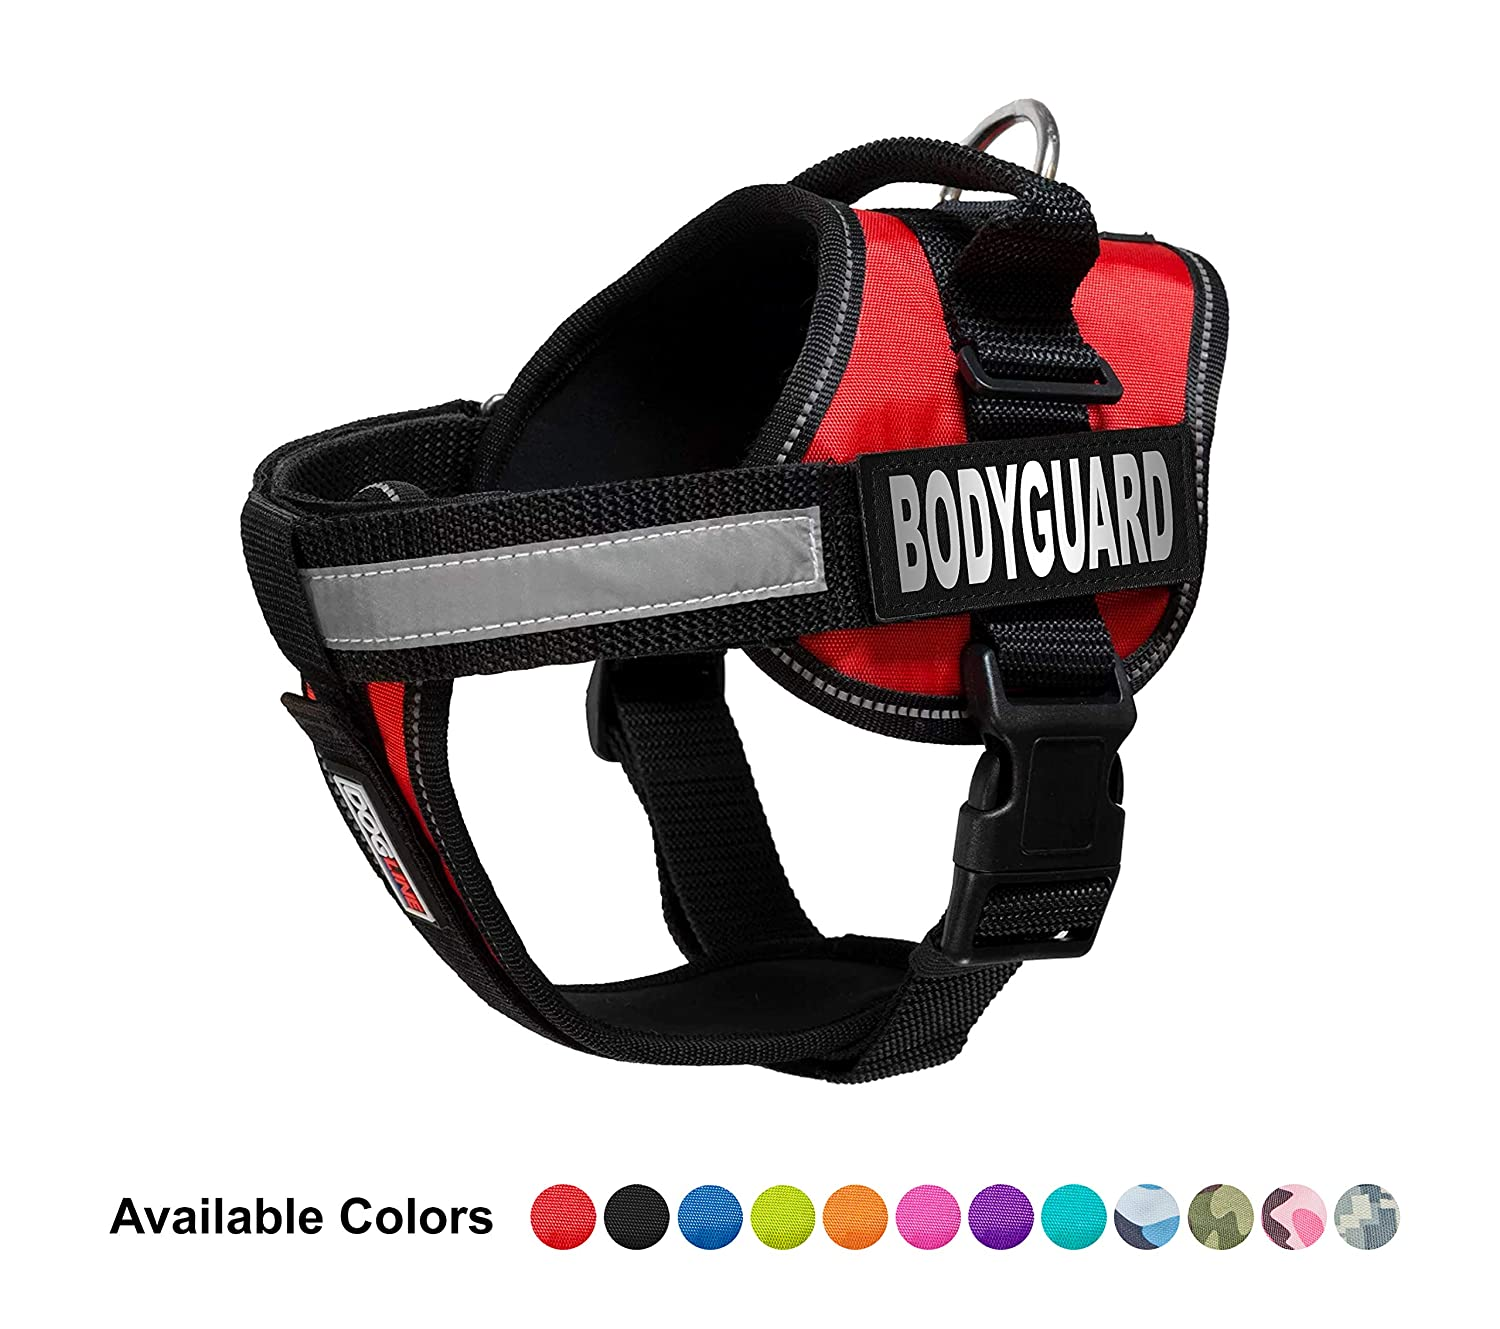 Dogline Unimax Multi-Purpose Vest Harness for Dogs and 2 Removable Bodyguard Patches, X-Large, Red